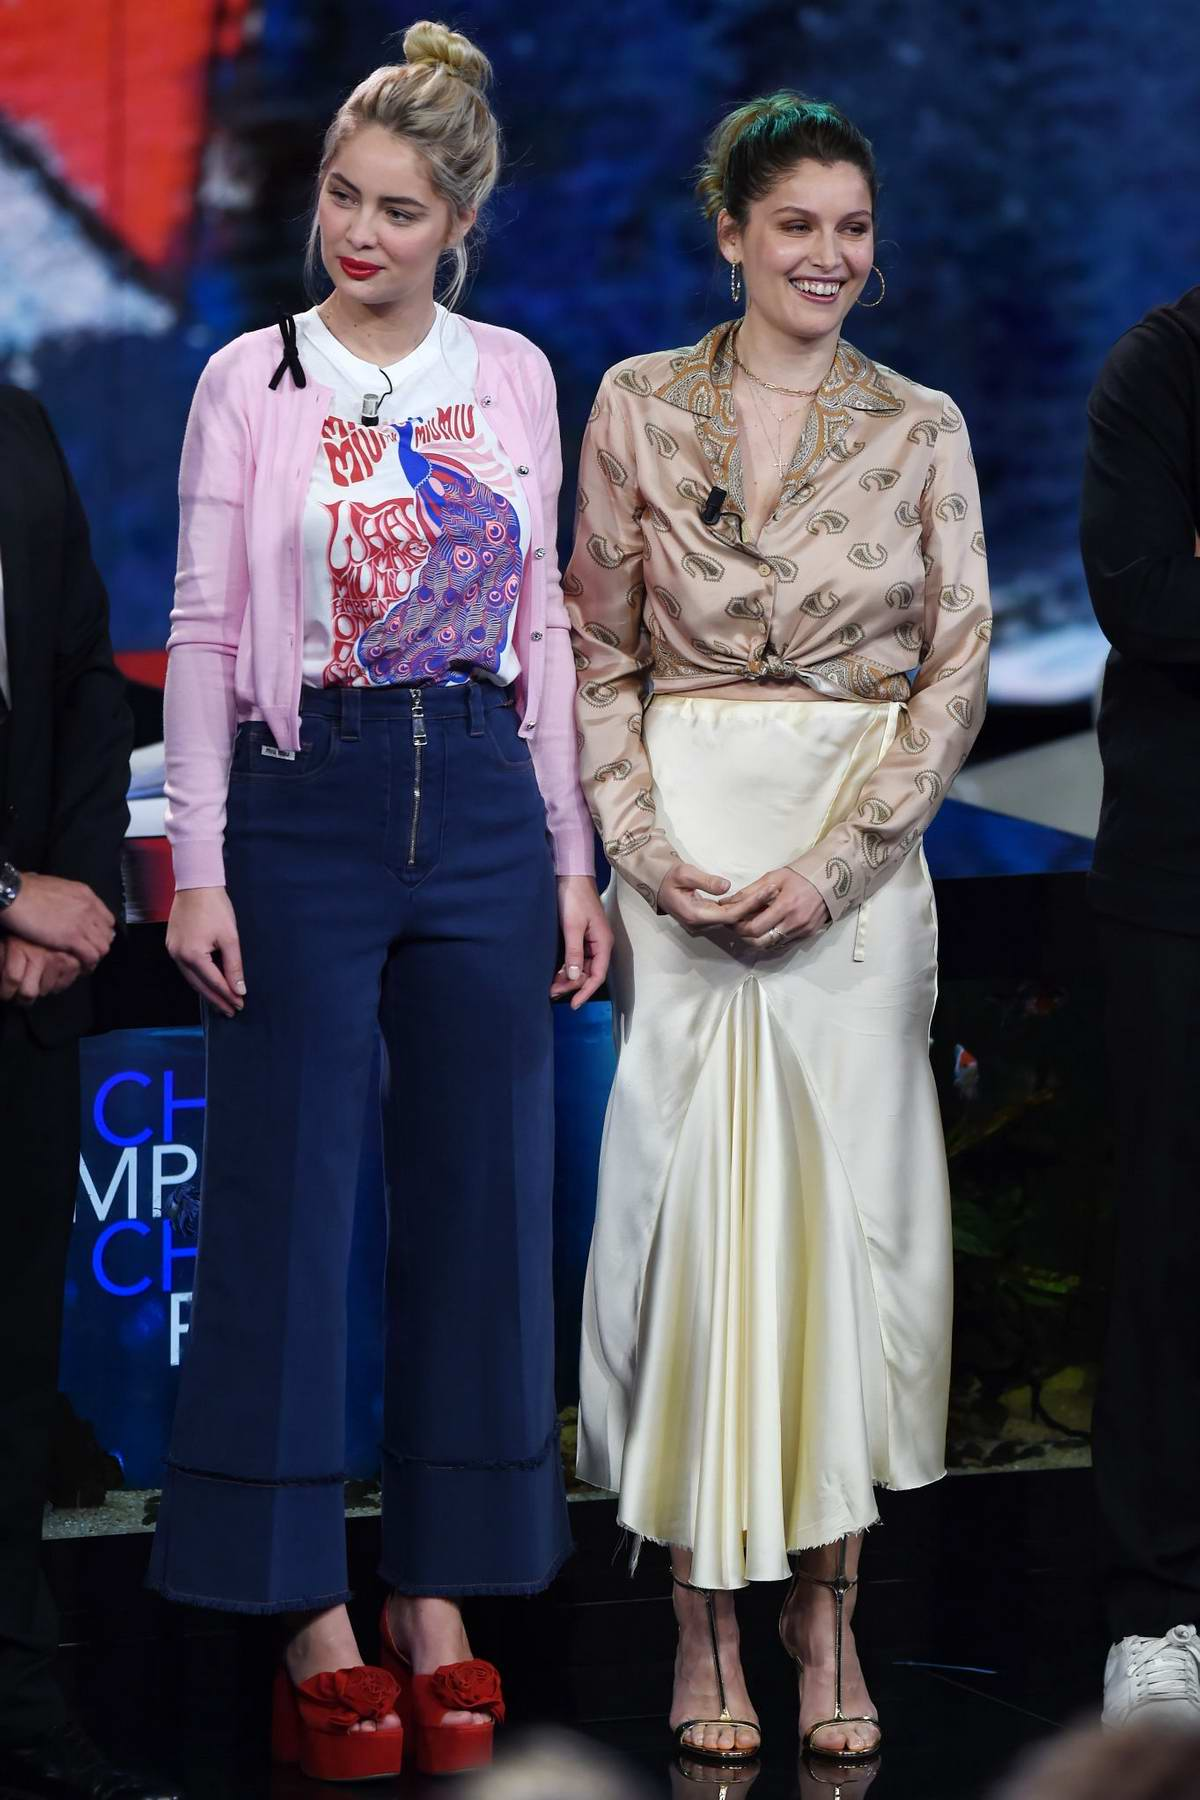 Laetitia Casta and Marie-Ange Casta at the Che Tempo Che Fa TV Show in Milan, Italy